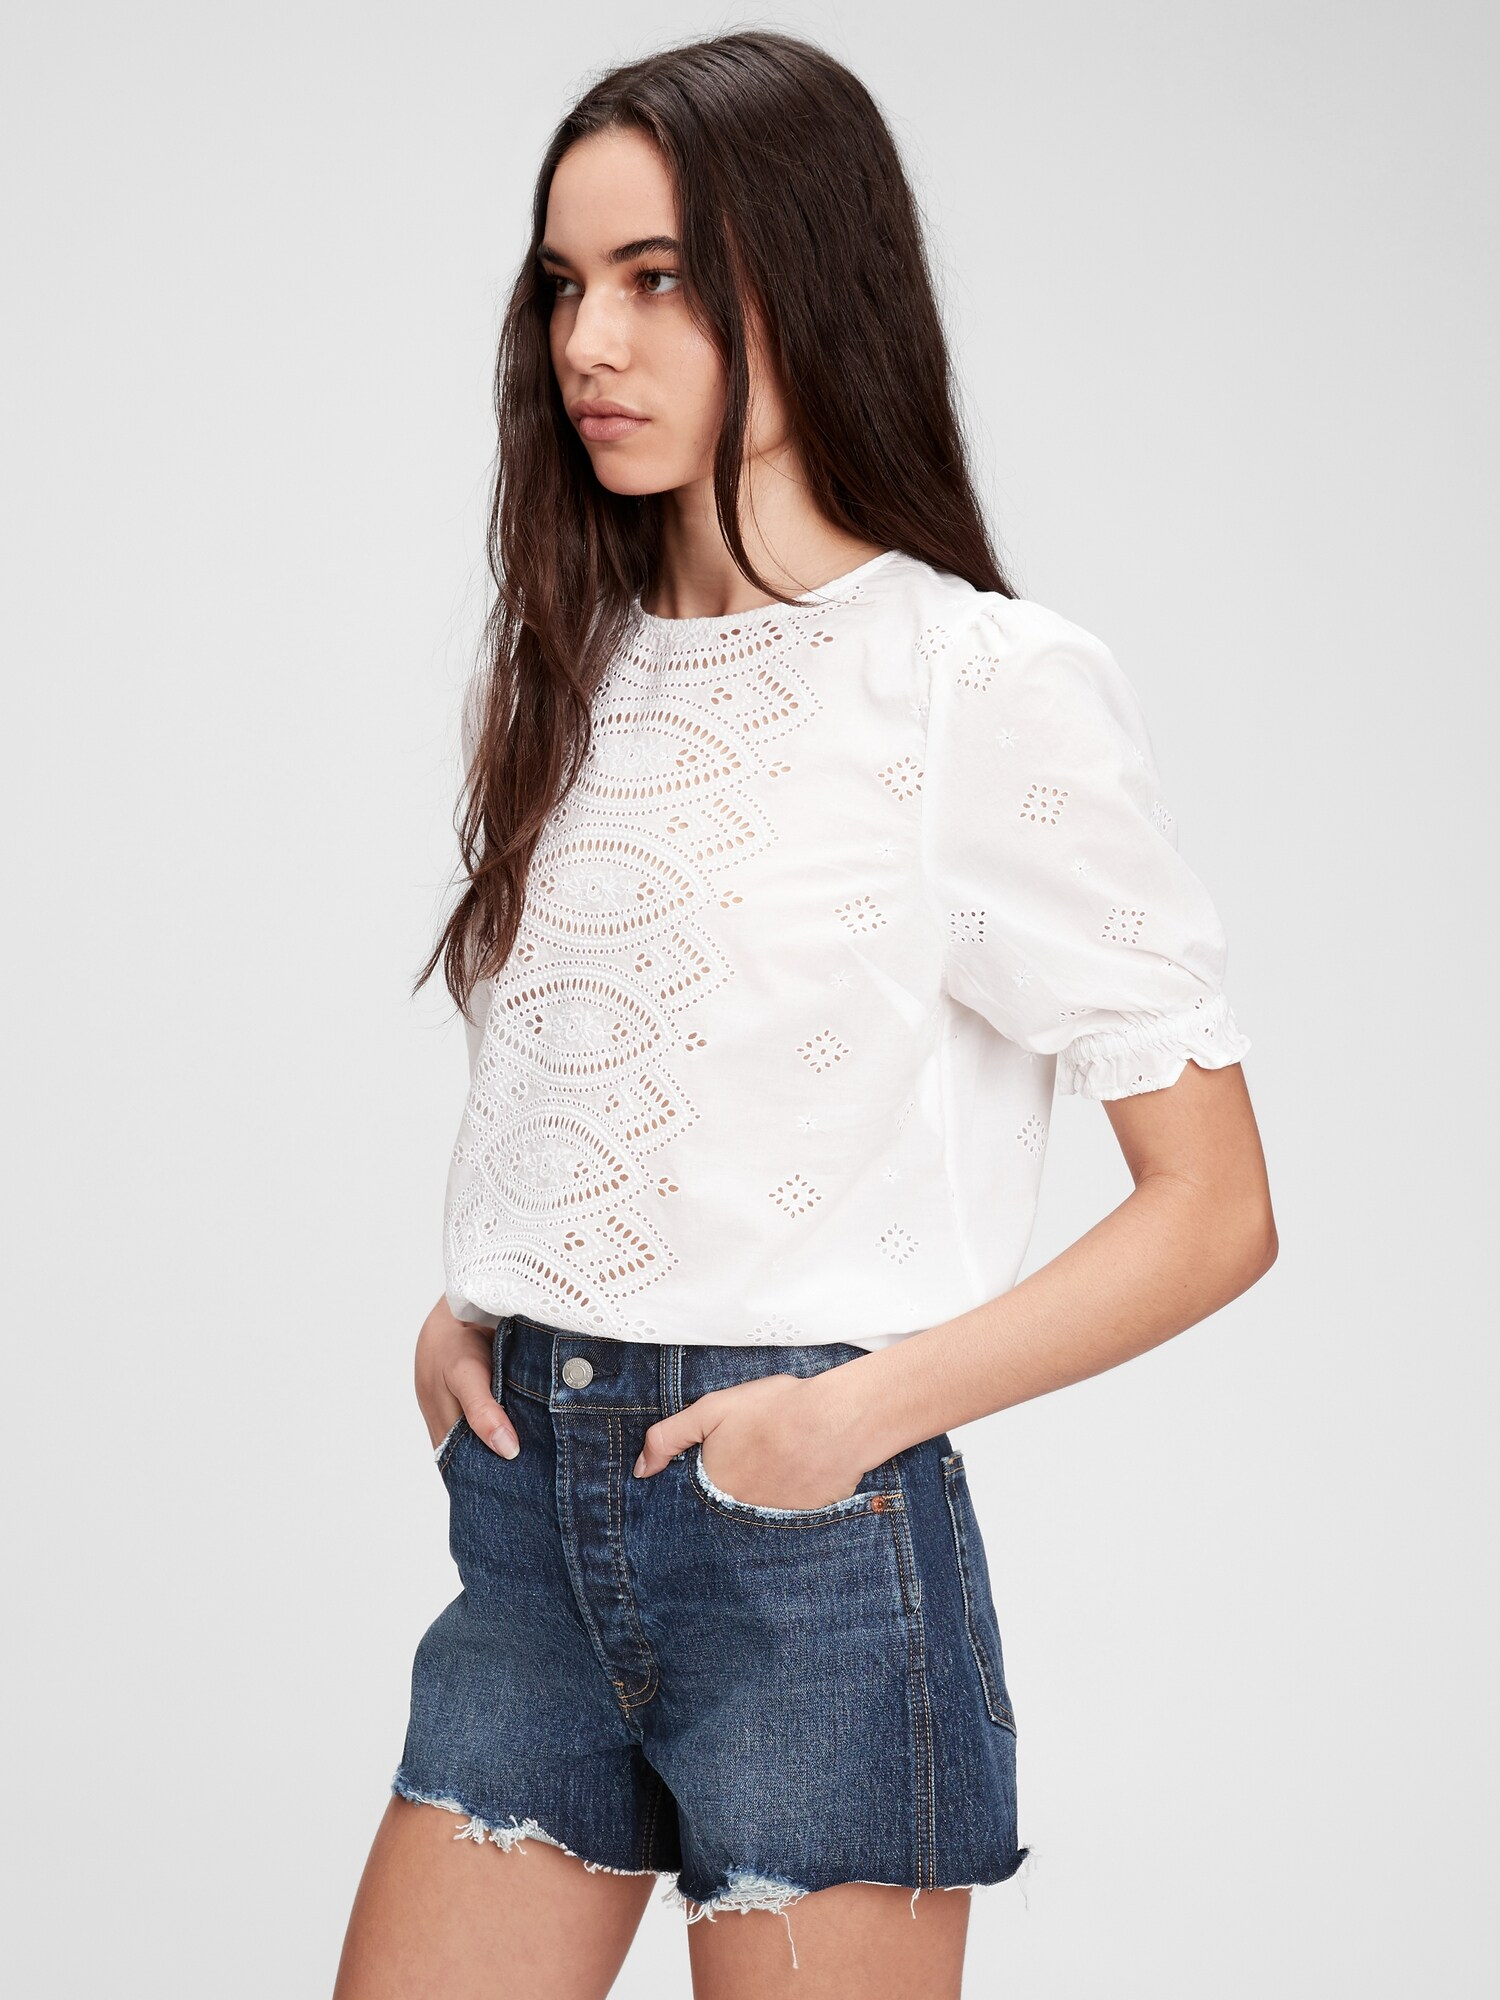 GAP white top with wood